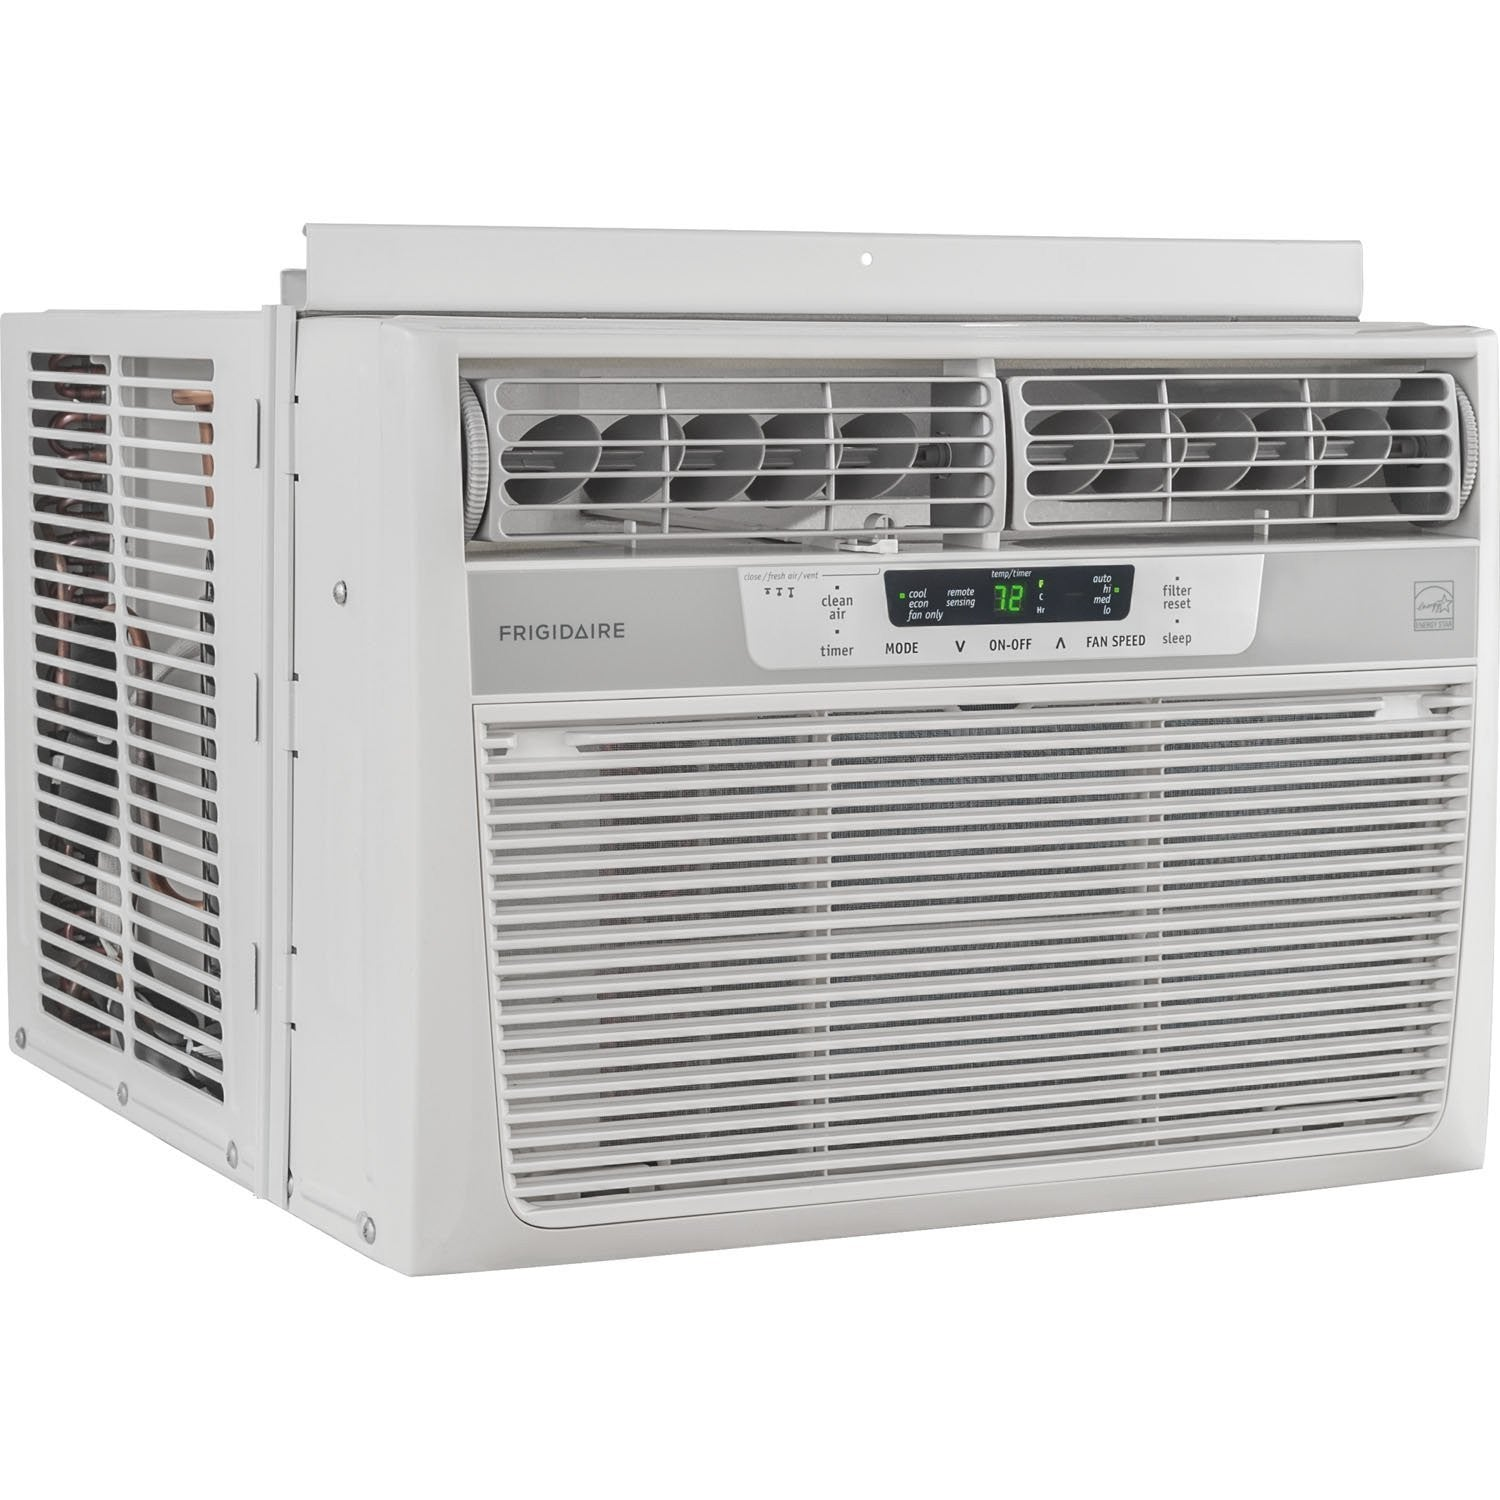 Frigidaire 12000 Btu 115v Window Mounted Compact Air Conditioner Temperature Sensing And Control With Remote